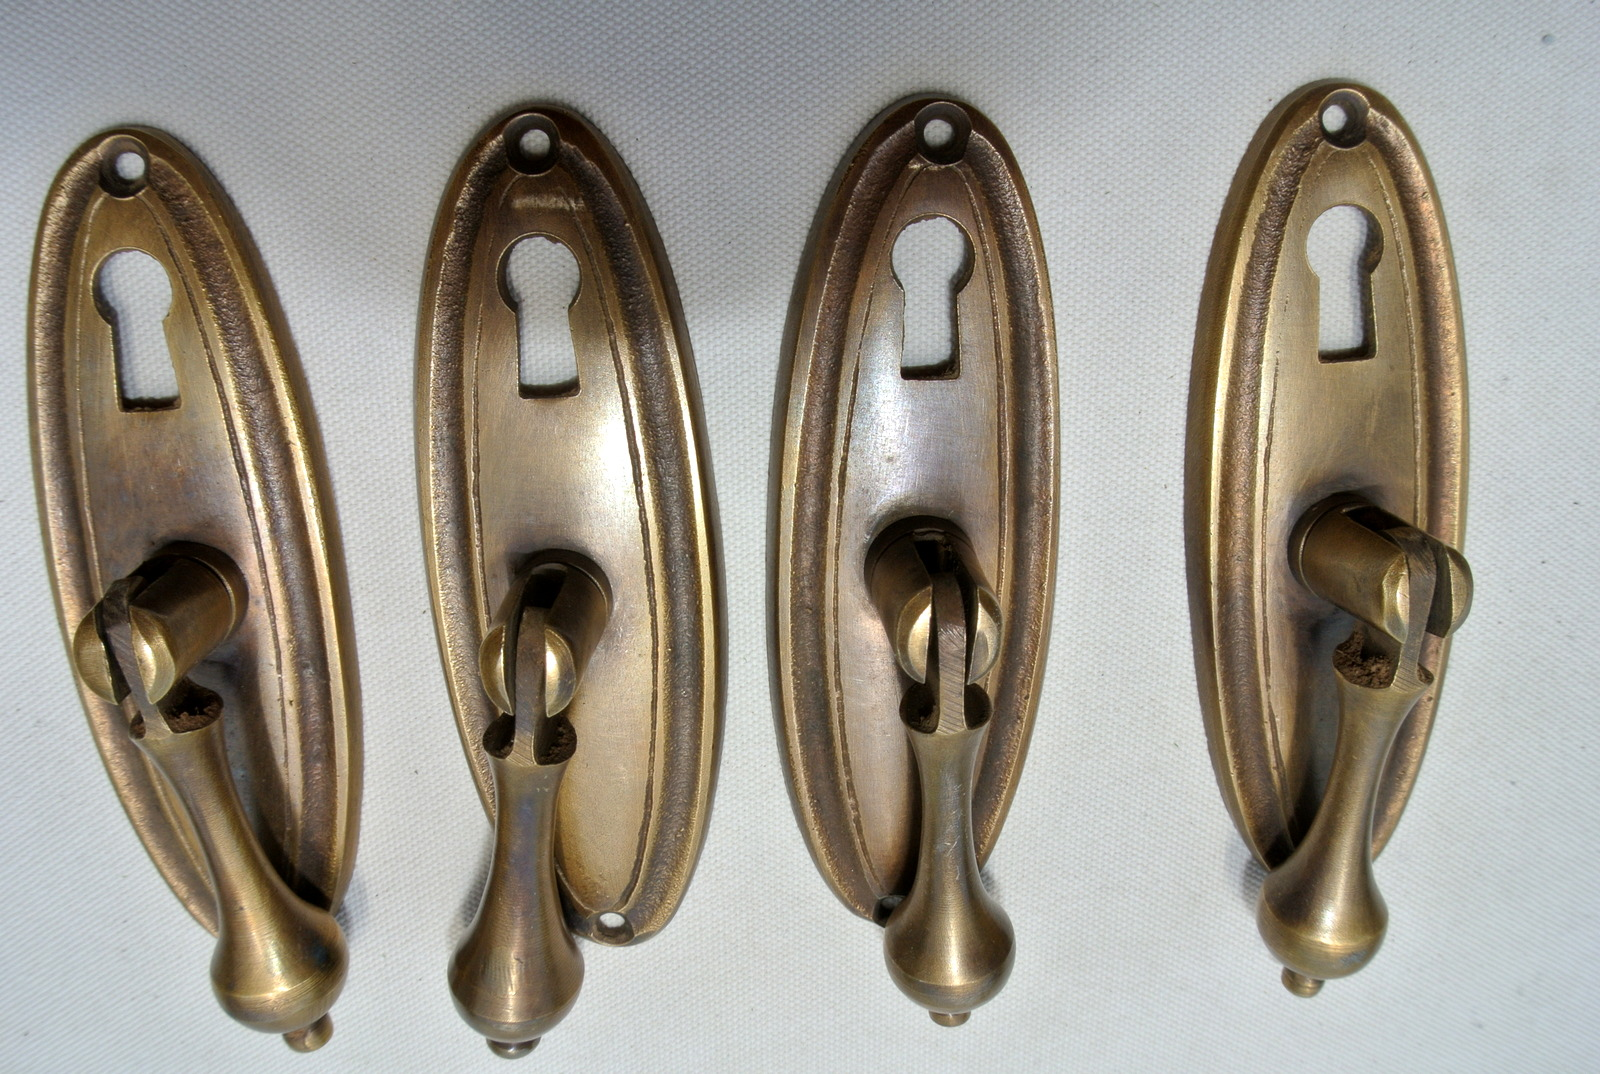 4 Pulls Drops Handles Antique Style Solid Brass Vintage